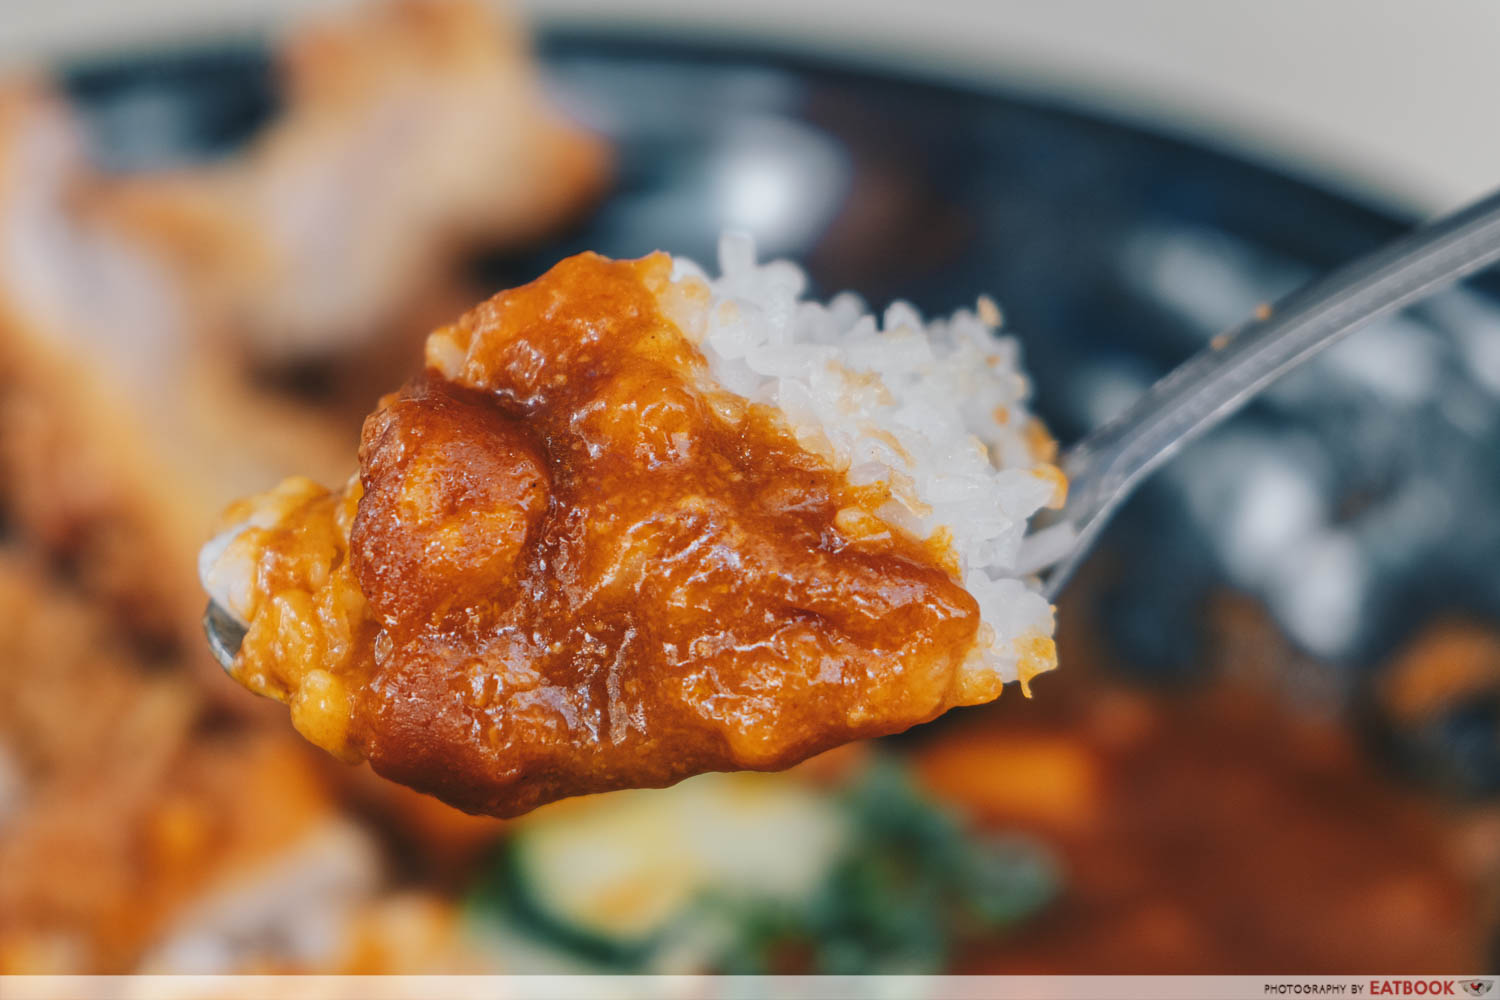 Oiishii Corner - Spoonful of curry and rice